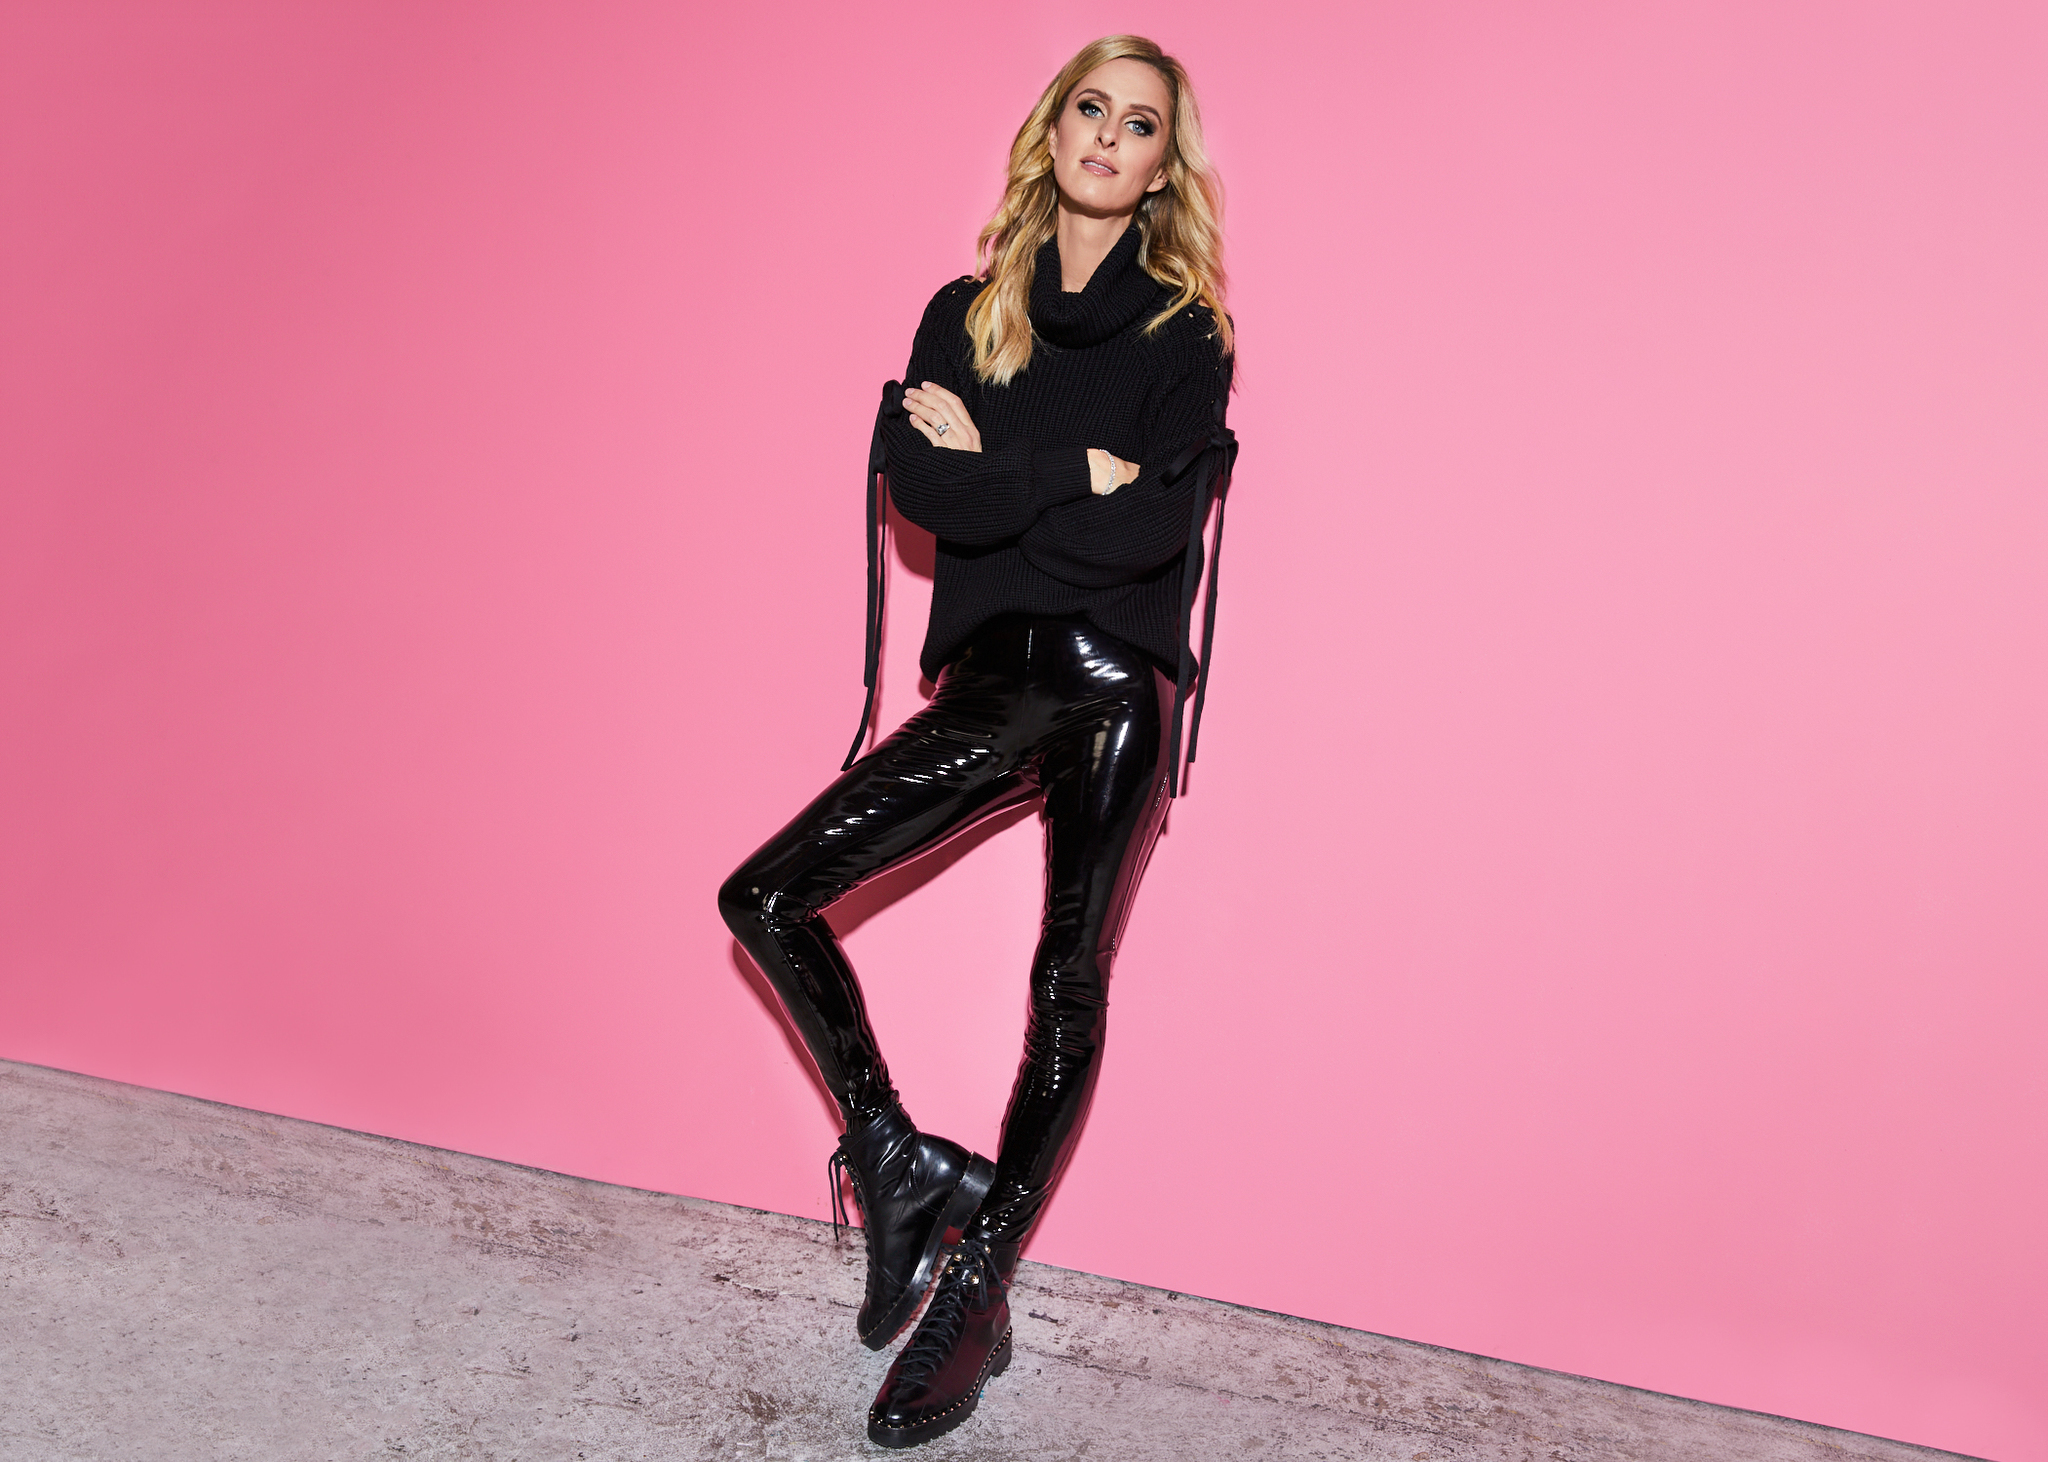 Nicky Hilton for Alice + Olivia Casual For A Cause.